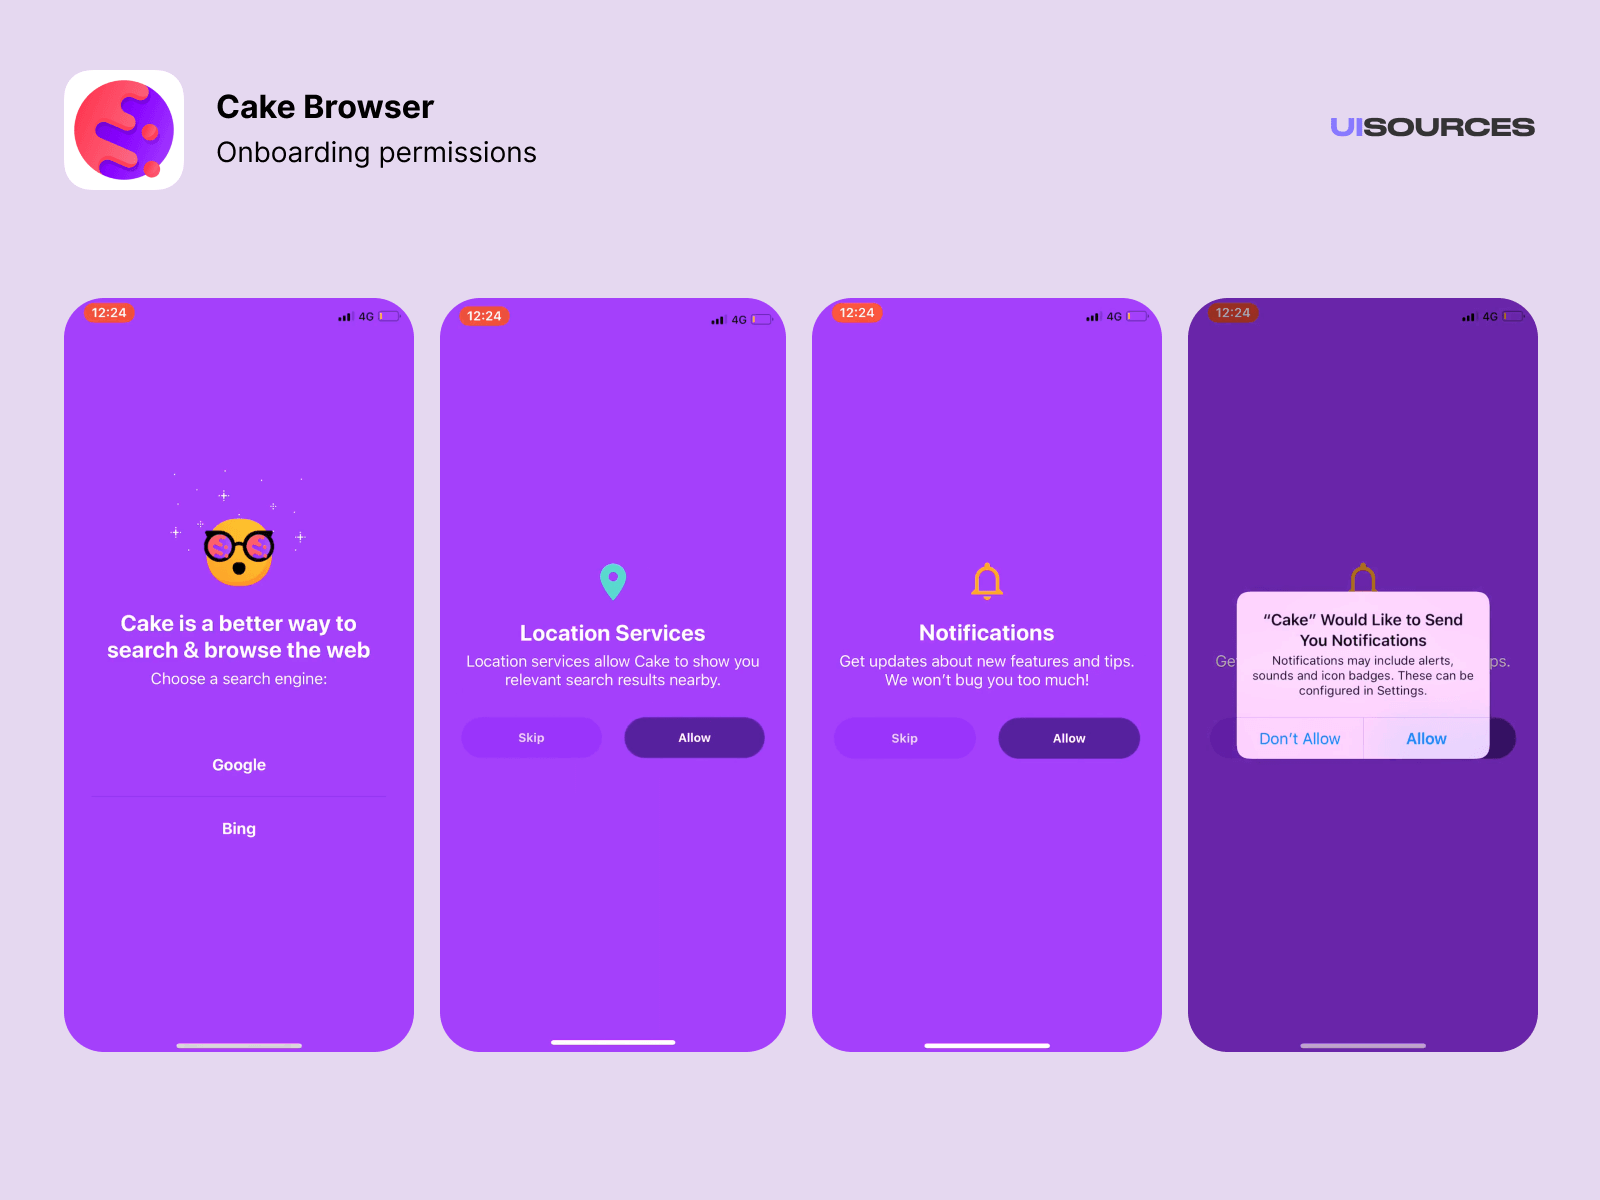 Onboarding Permissions